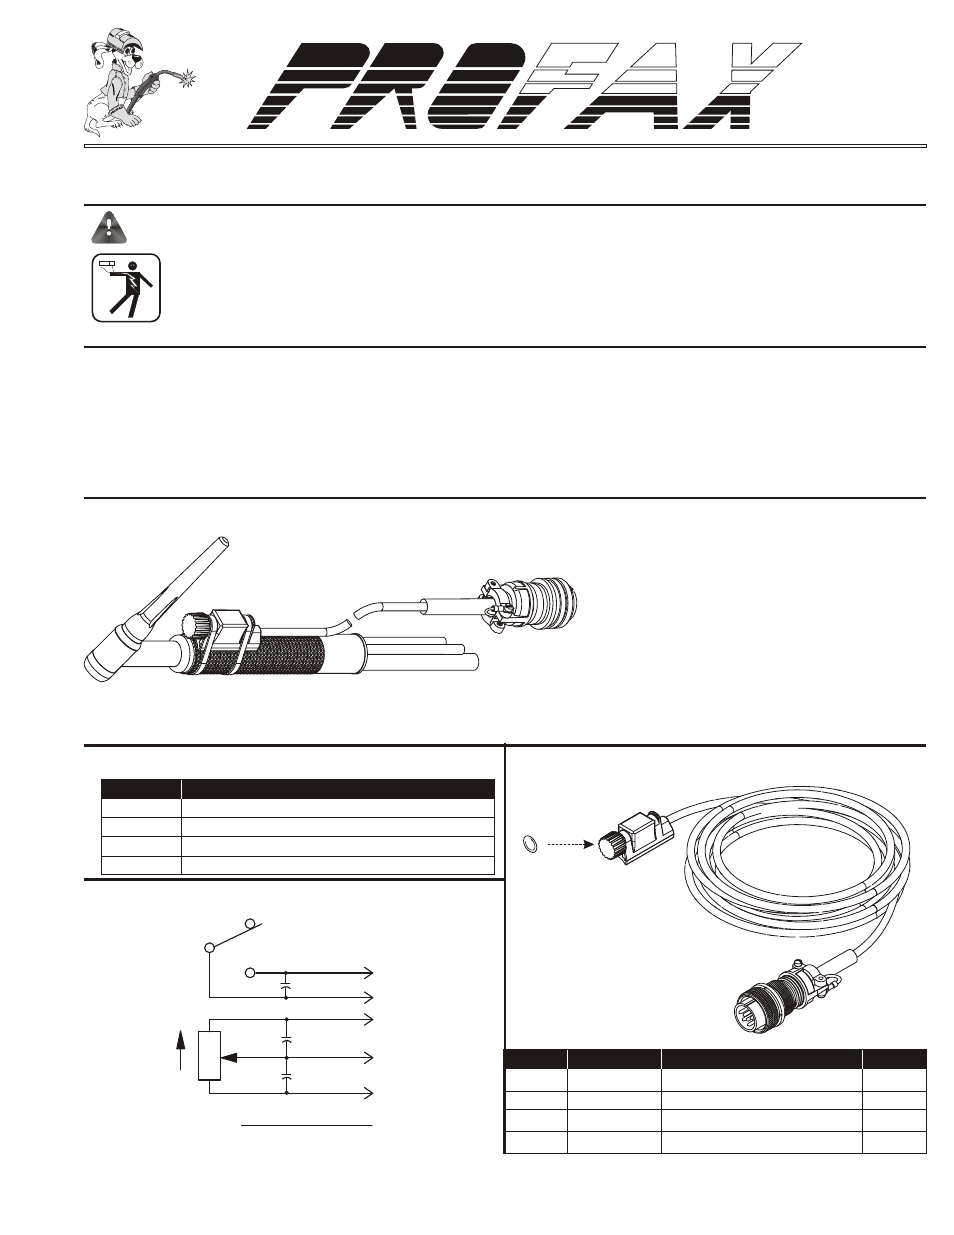 Profax Lftc 6 User Manual 2 Pages Lincoln Welder Invertec 275 Parts Background Image